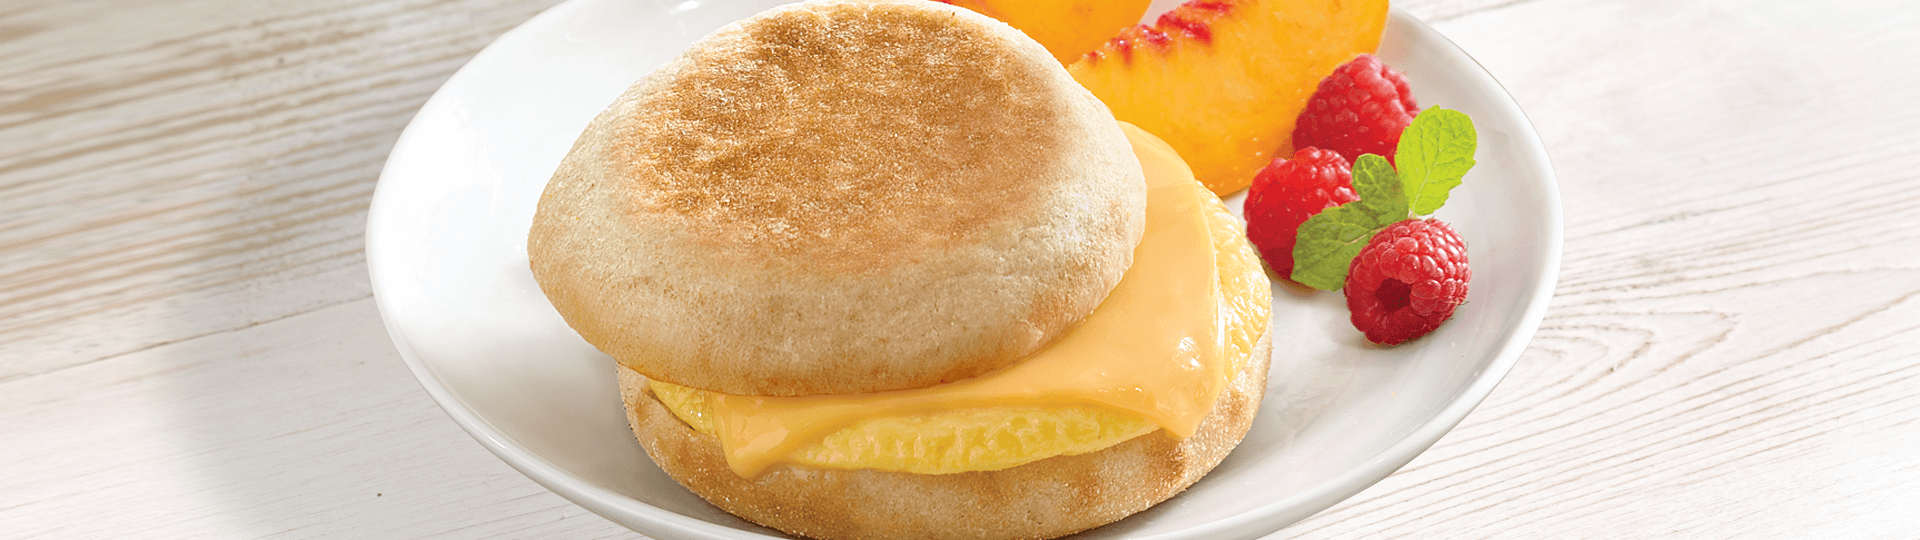 EGG WHITE & CHEESE ENGLISH MUFFIN